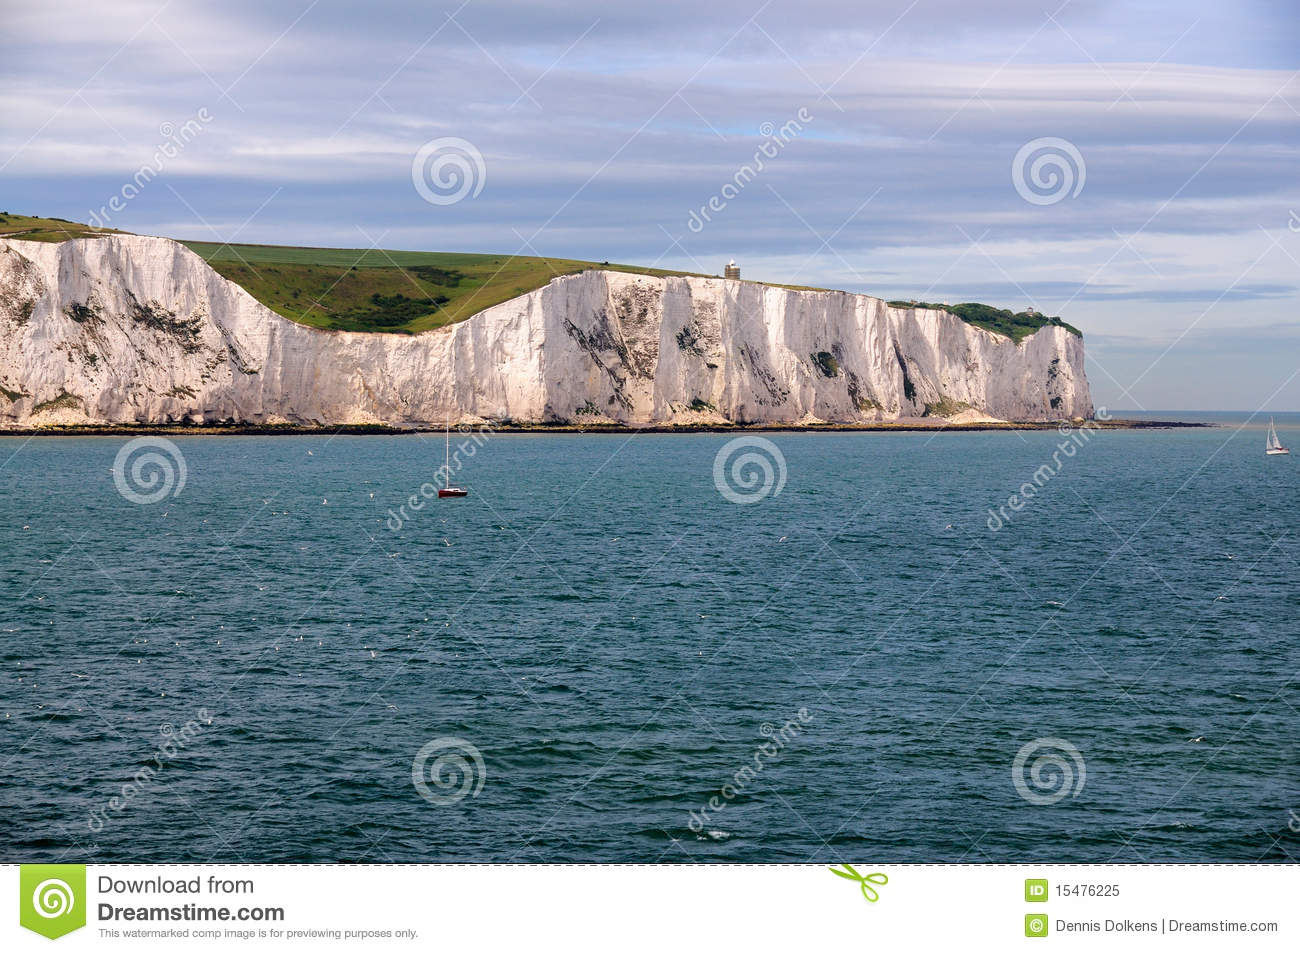 Download White Cliffs Of Dover From Sea Stock Image - Image of sailing, water: 15476225